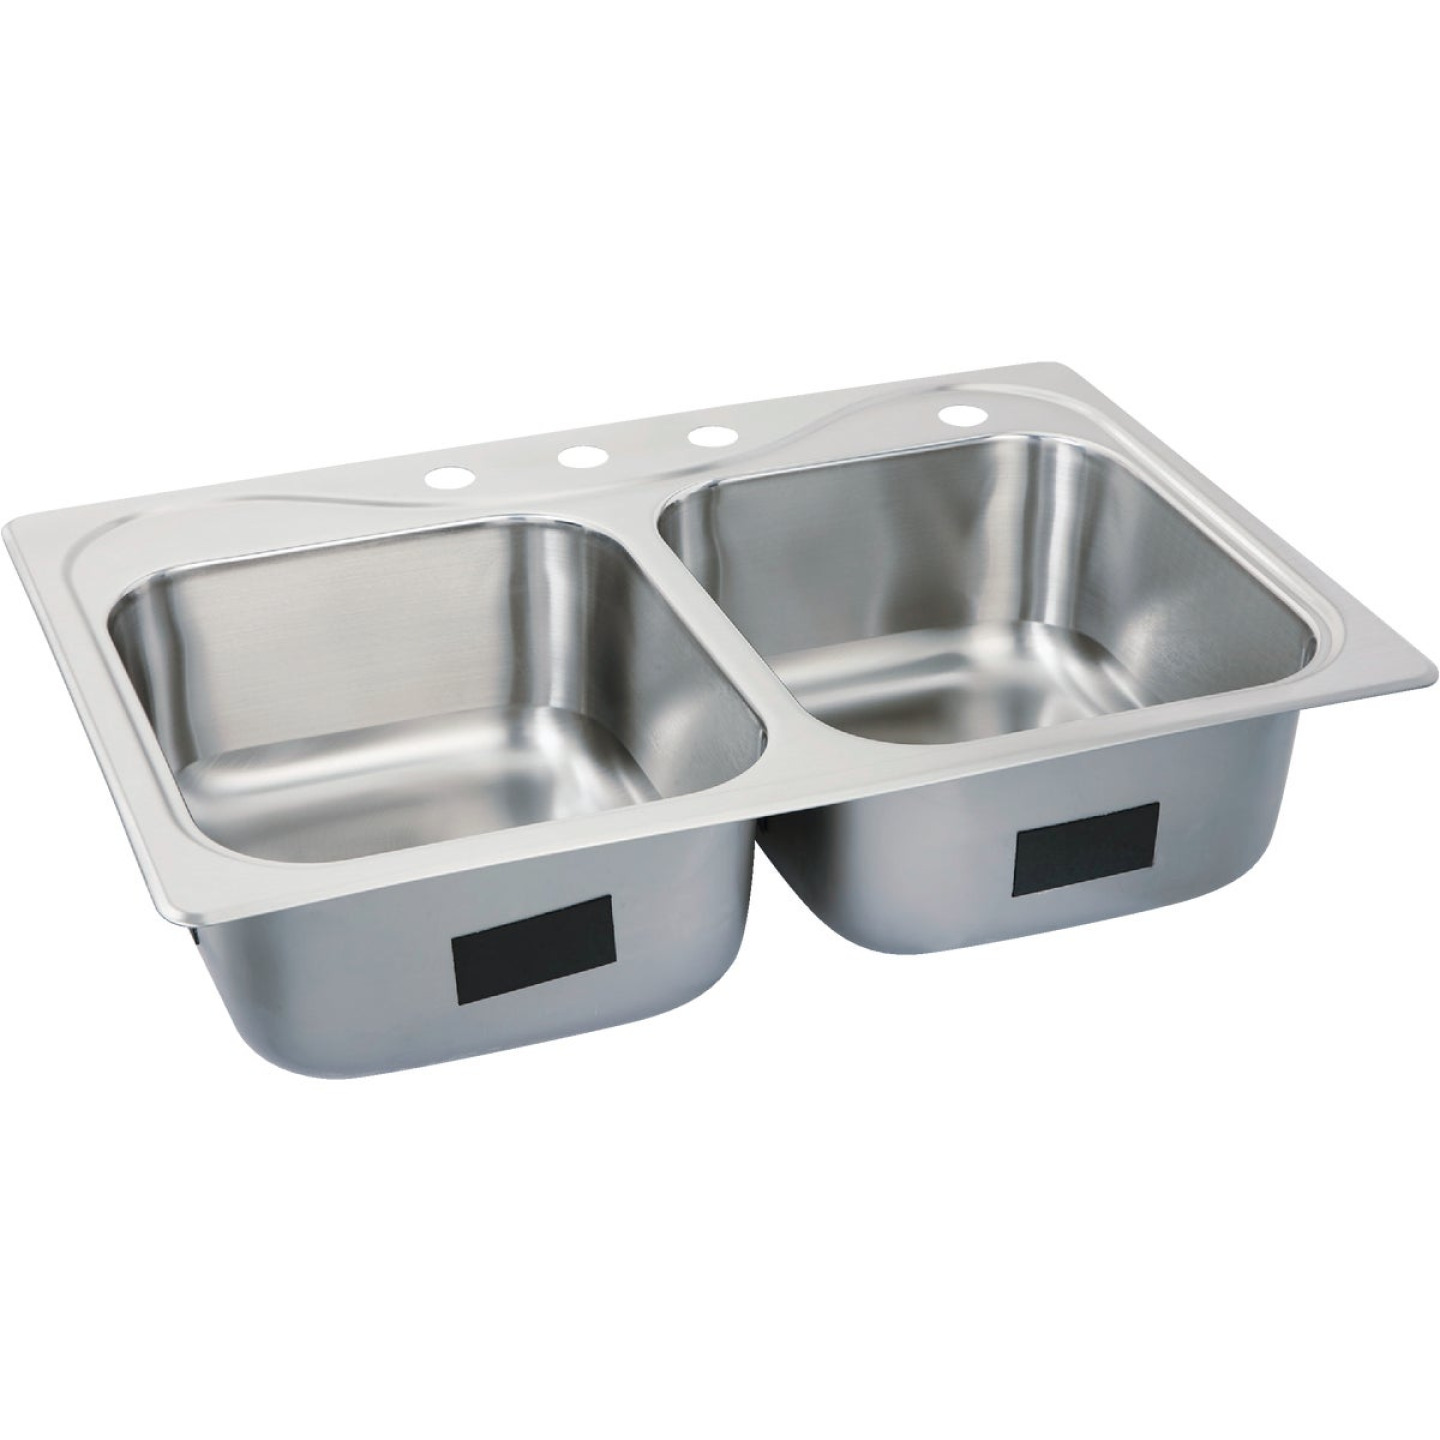 Sterling Southhaven Double Bowl 33 In. x 22 In. x 8 In. Deep Stainless Steel Kitchen Sink Image 1